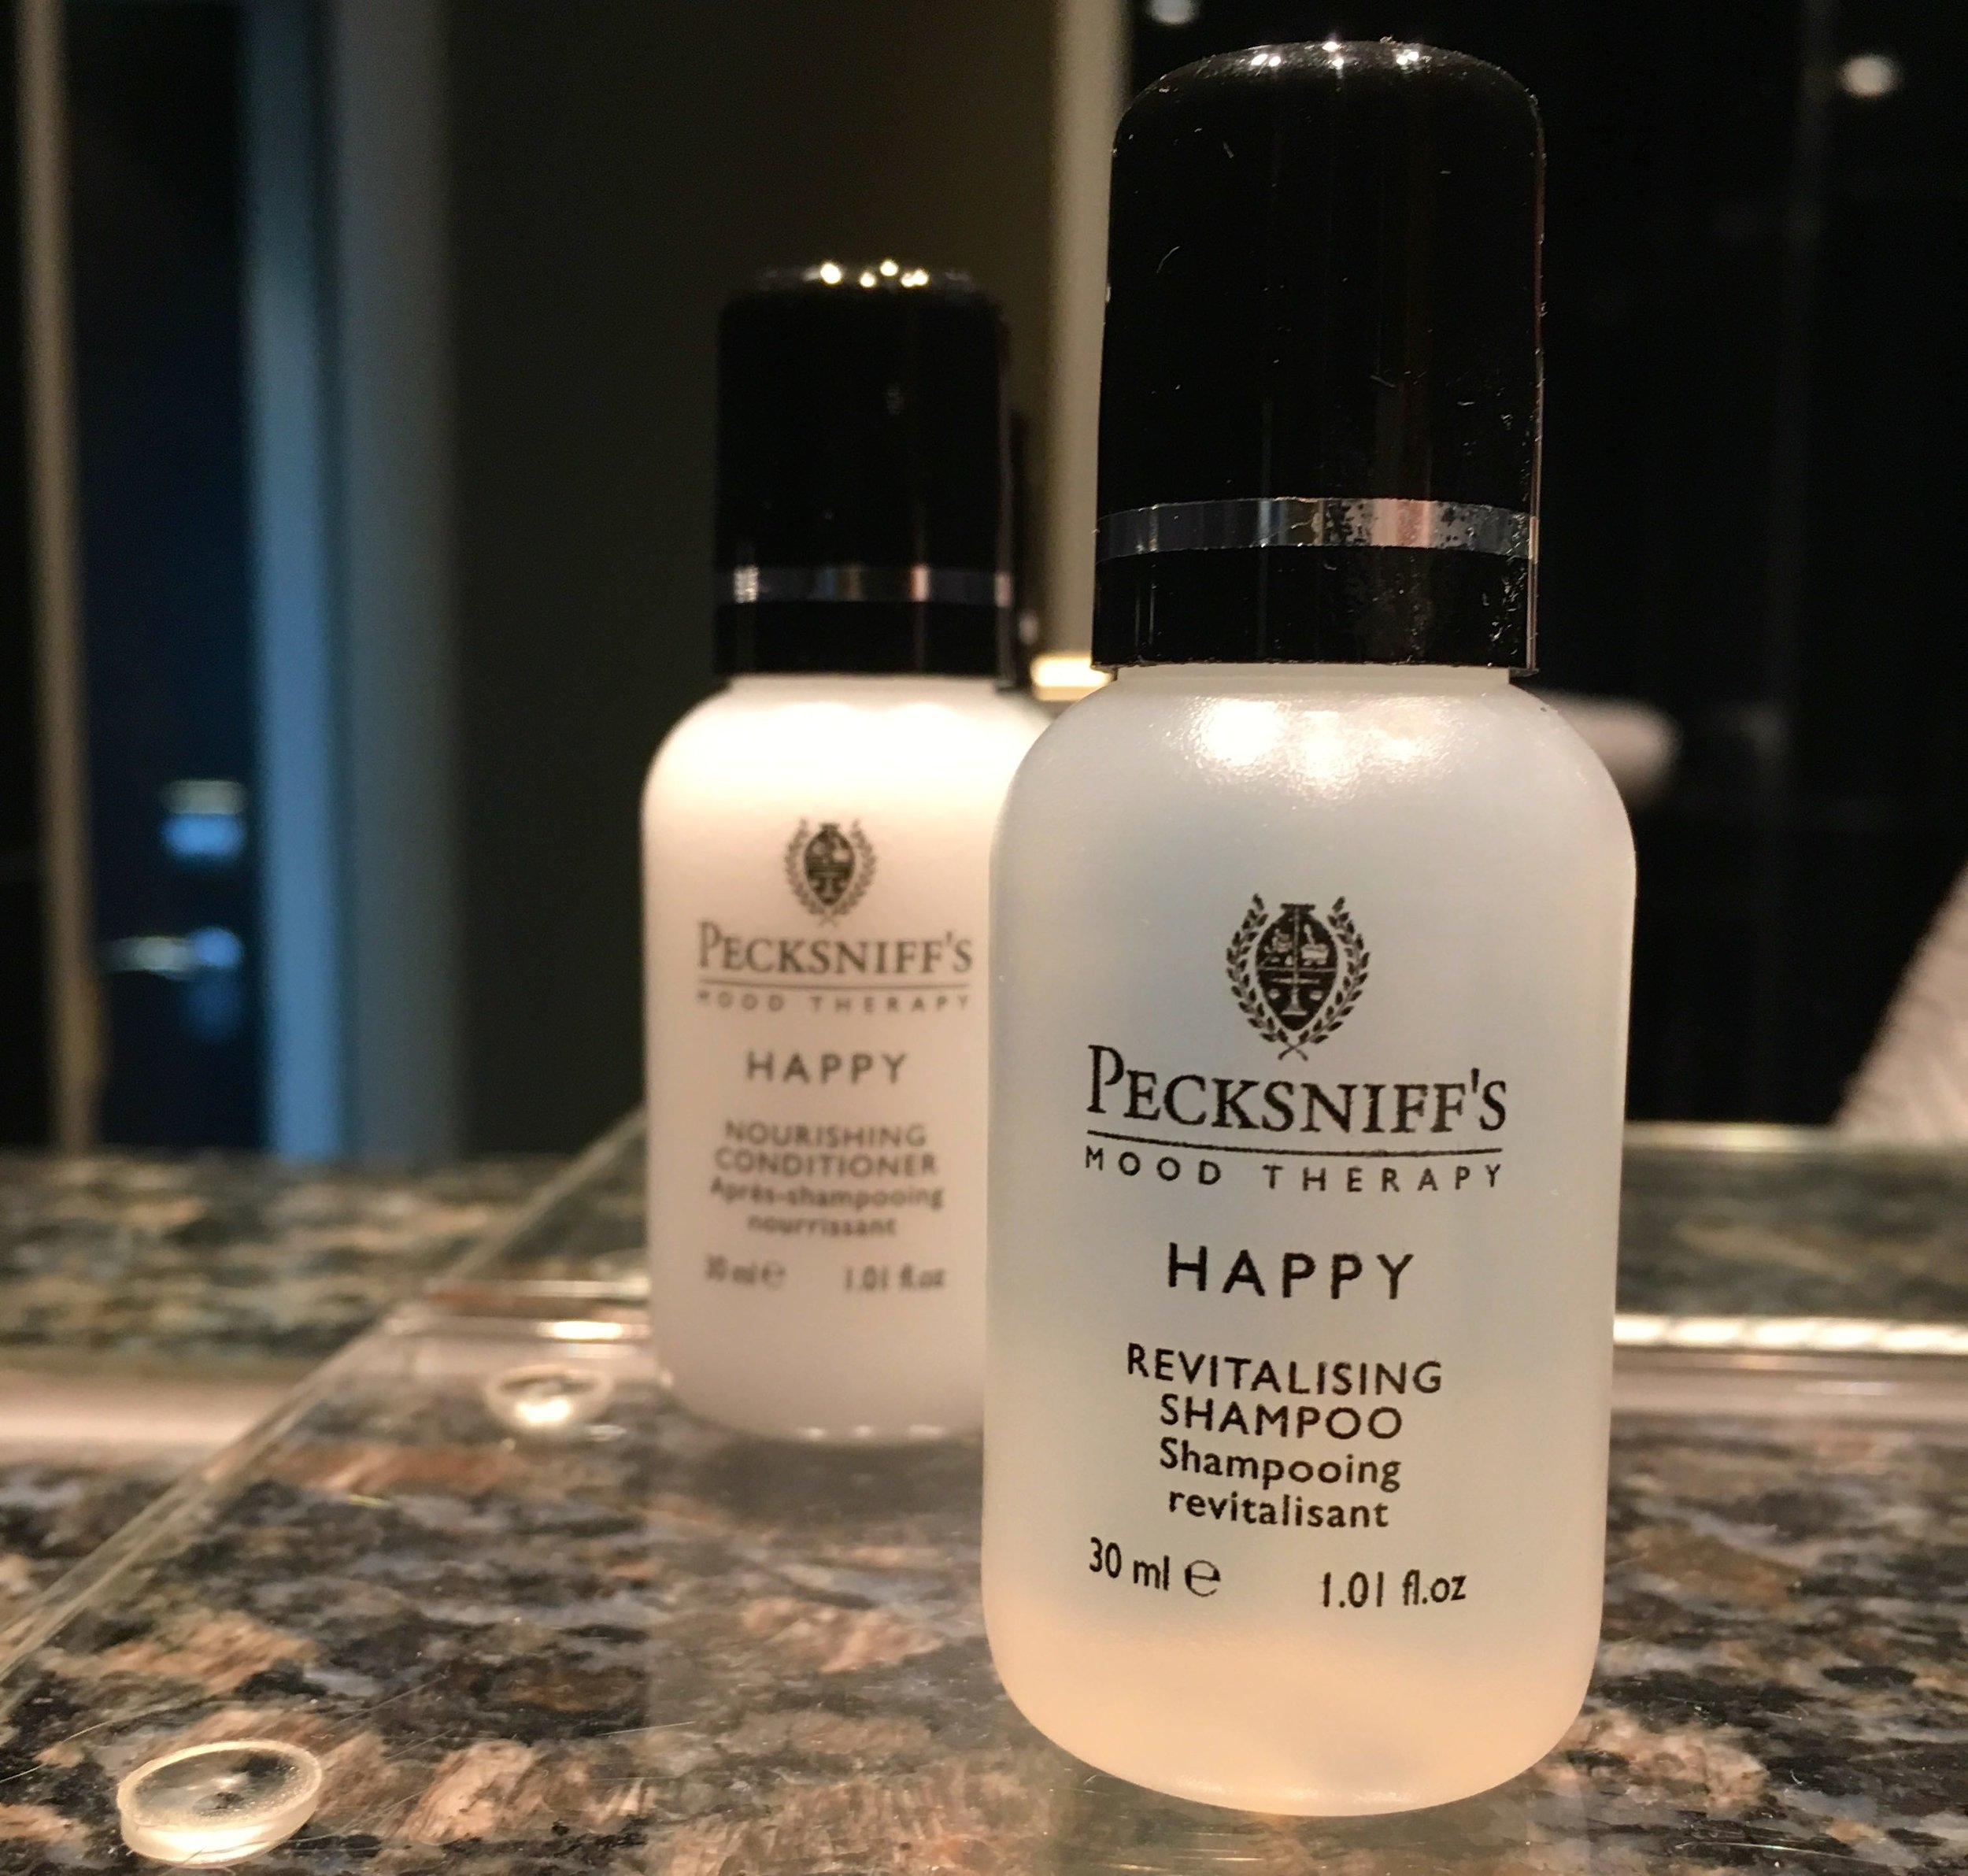 Brooklands Hotel in Weybridge with Pecksniff's Happy toiletries - which made me smile